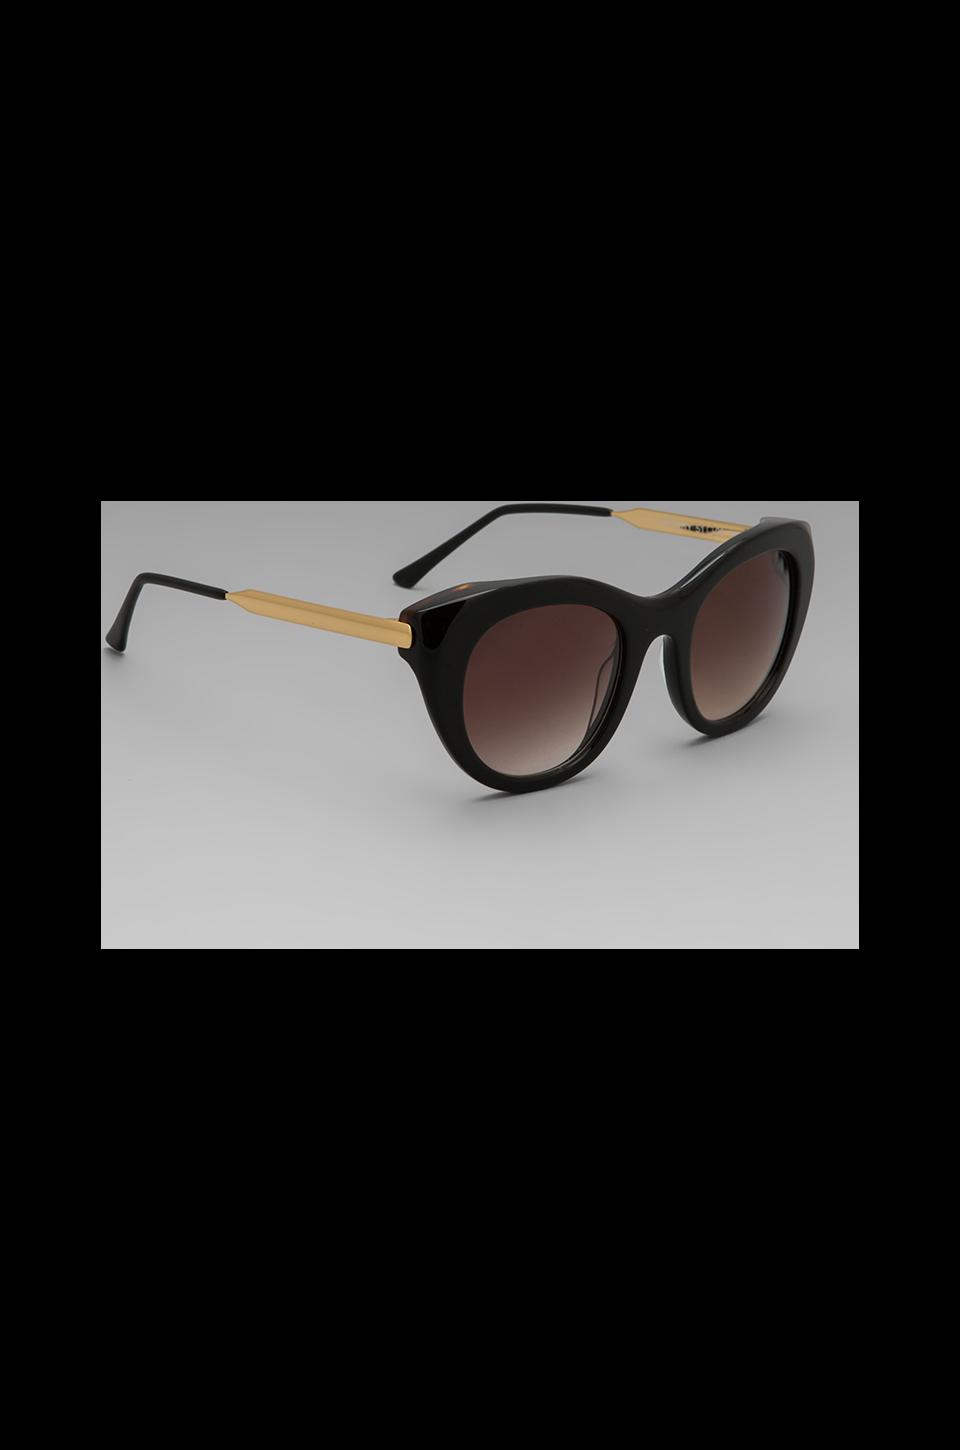 Thierry Lasry Anorexxxy Sunglasses in Thin Tort